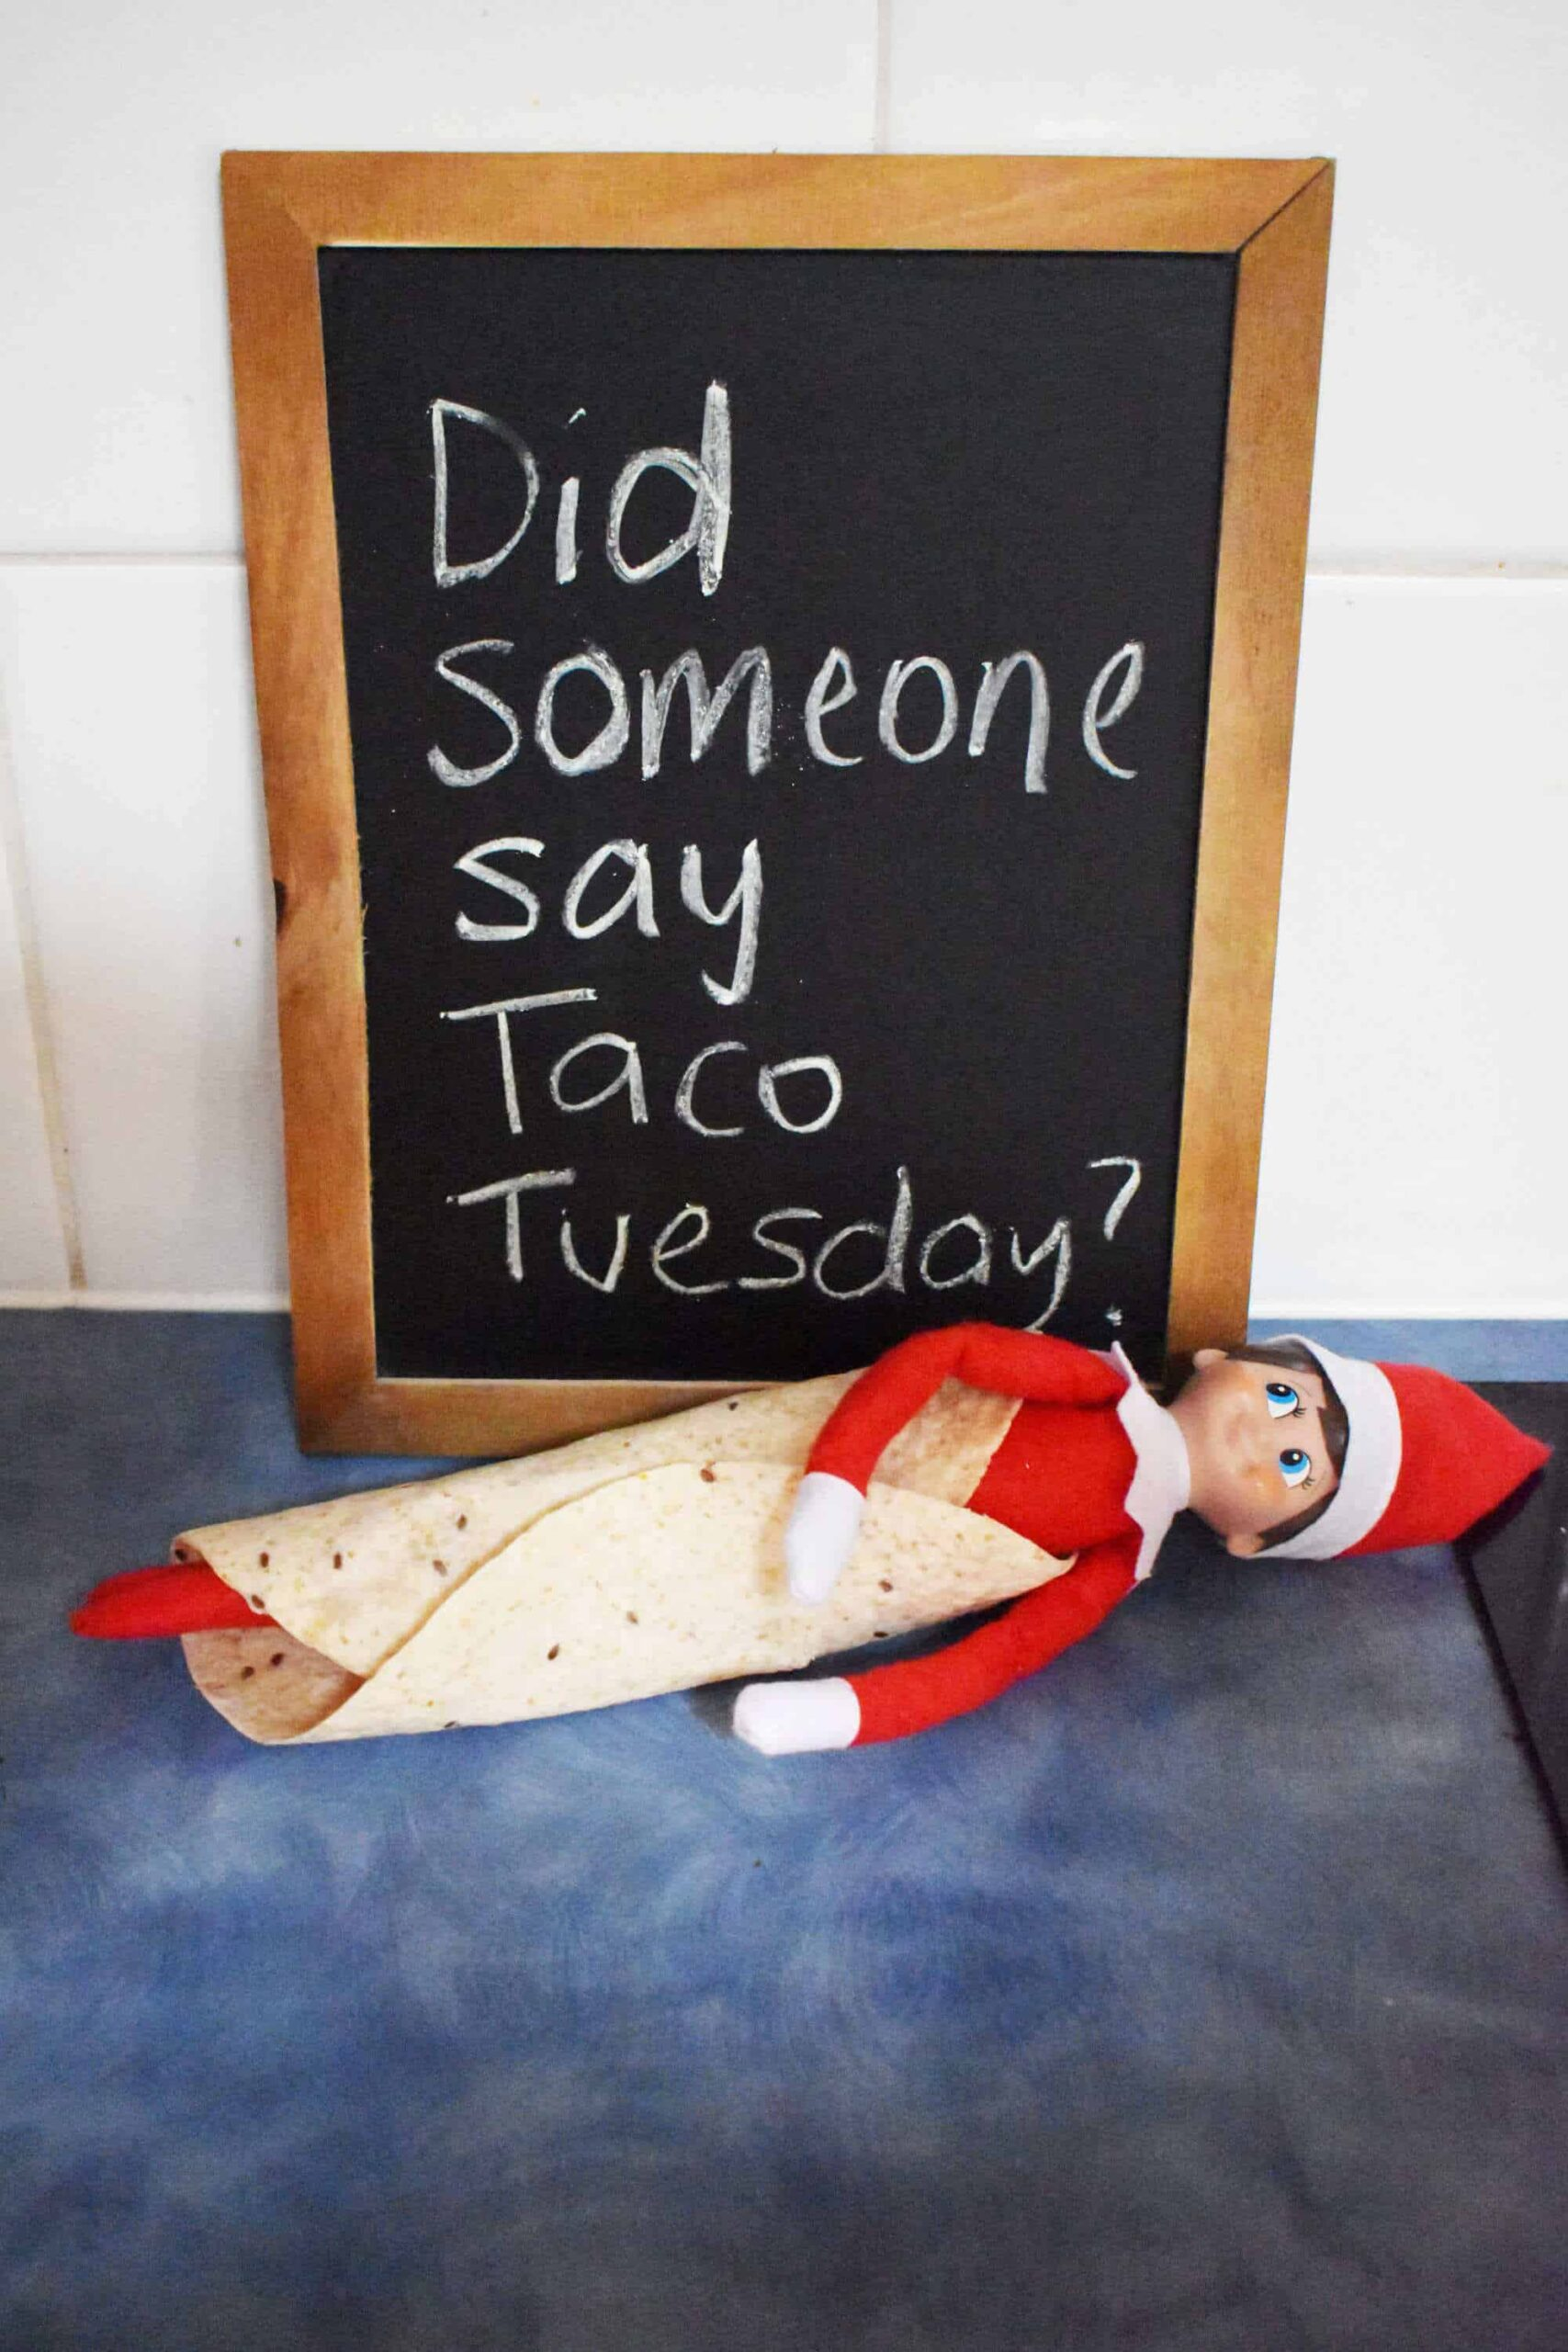 Elf taco tuesday